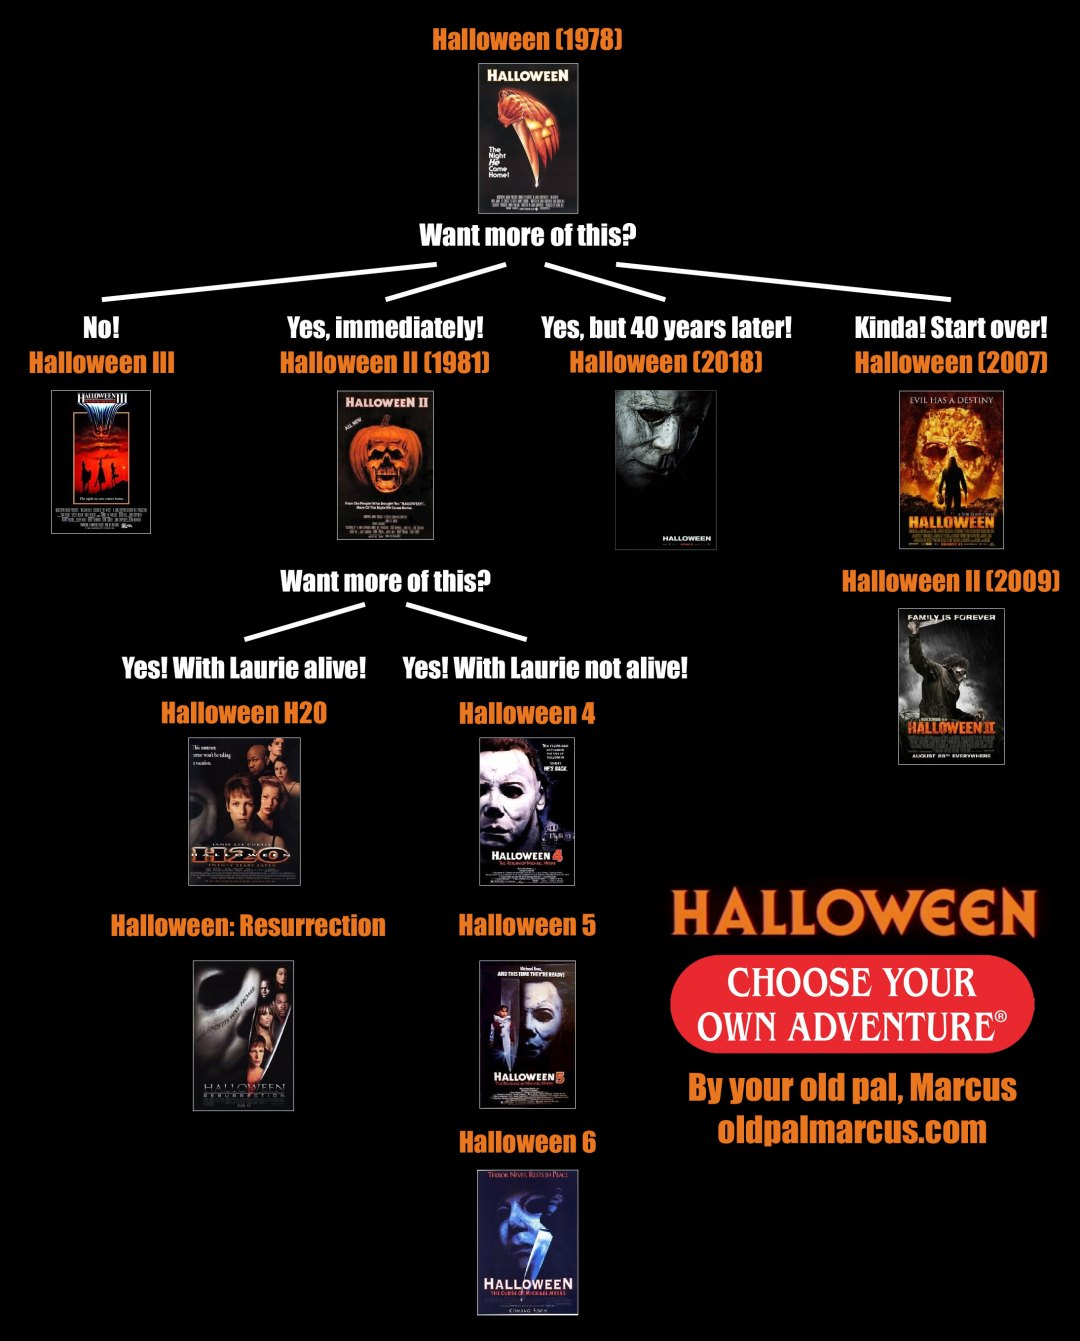 Halloween Choose Your Own Adventure